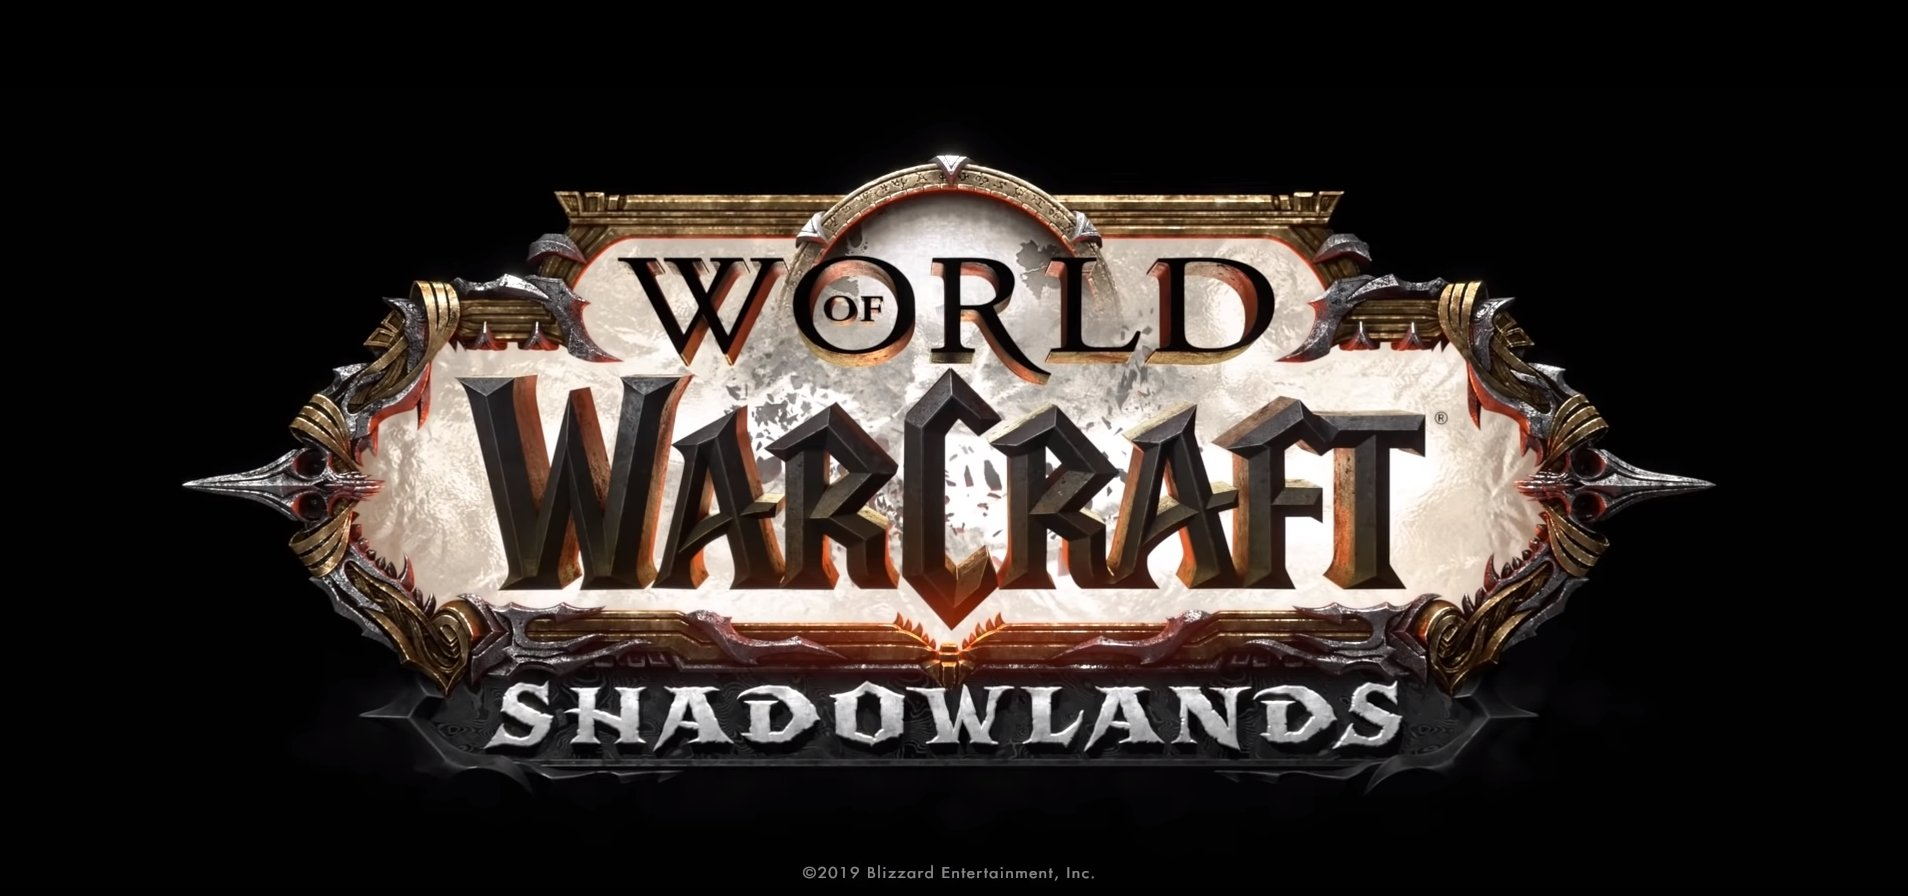 Players Are Finding Game-Breaking Bugs On The Soon To Be Released World Of Warcraft: Shadowlands Prepatch